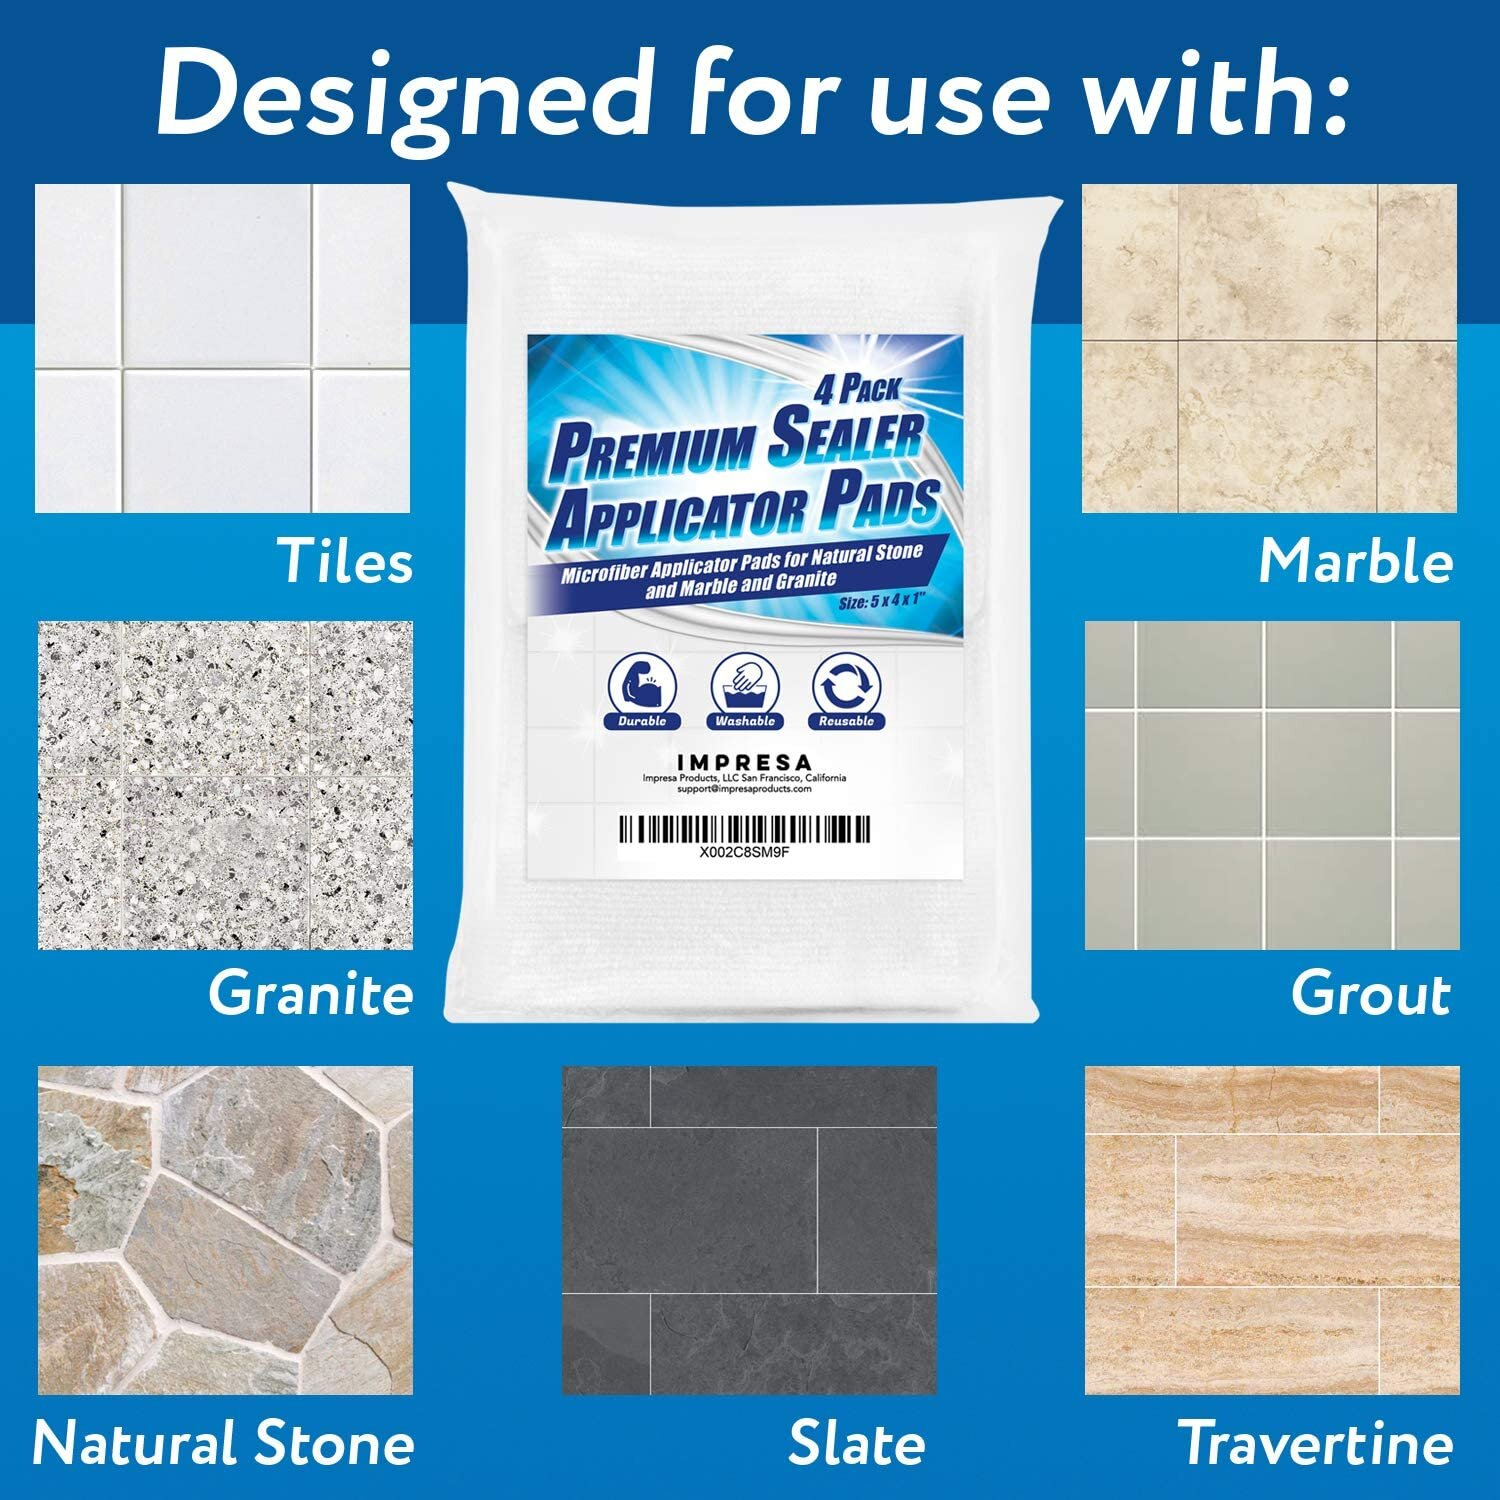 4 pack sealer applicator pad to seal tile marble granite natural stone slate travertine and grout surfaces with advanced microfiber